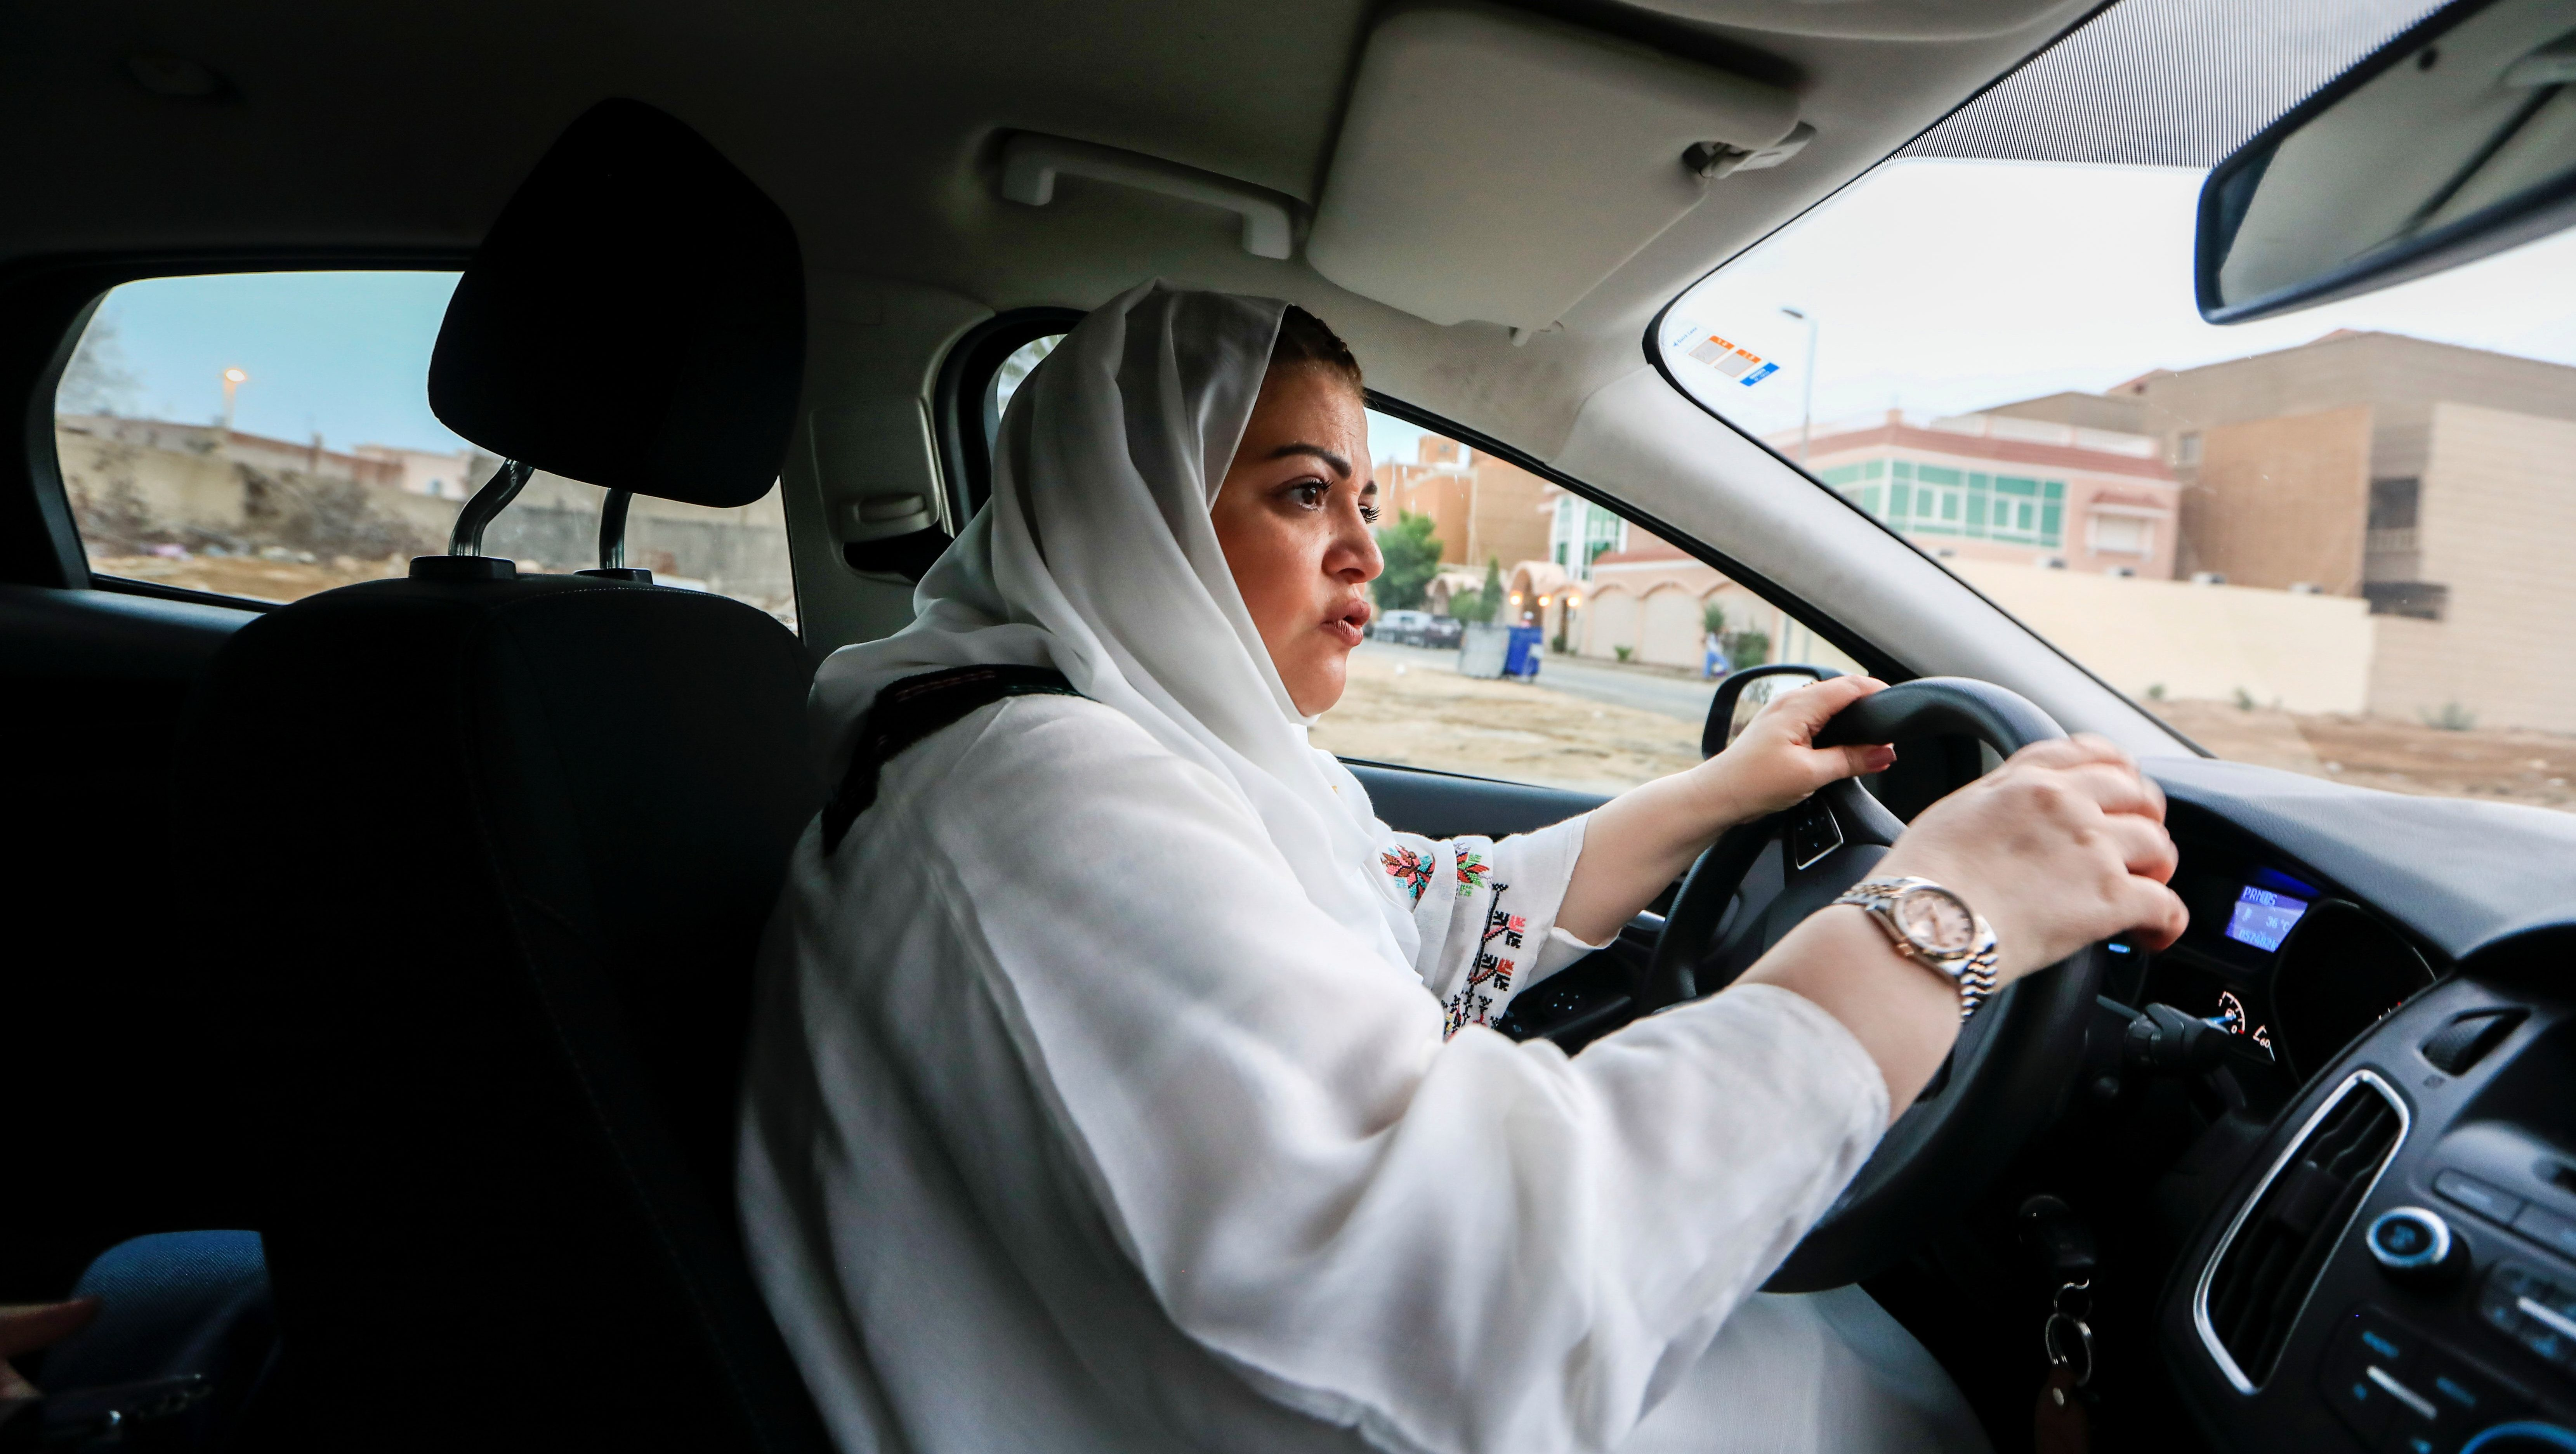 Dr Samira al-Ghamdi, 47, a practicing psychologist, drives around the side roads of a neighborhood as she prepares to hit the road on Sunday as a licensed driver, in Jeddah, Saudi Arabia June 21, 2018. Picture taken June 21, 2018. REUTERS/Zohra Bensemra - RC11CC6FE930